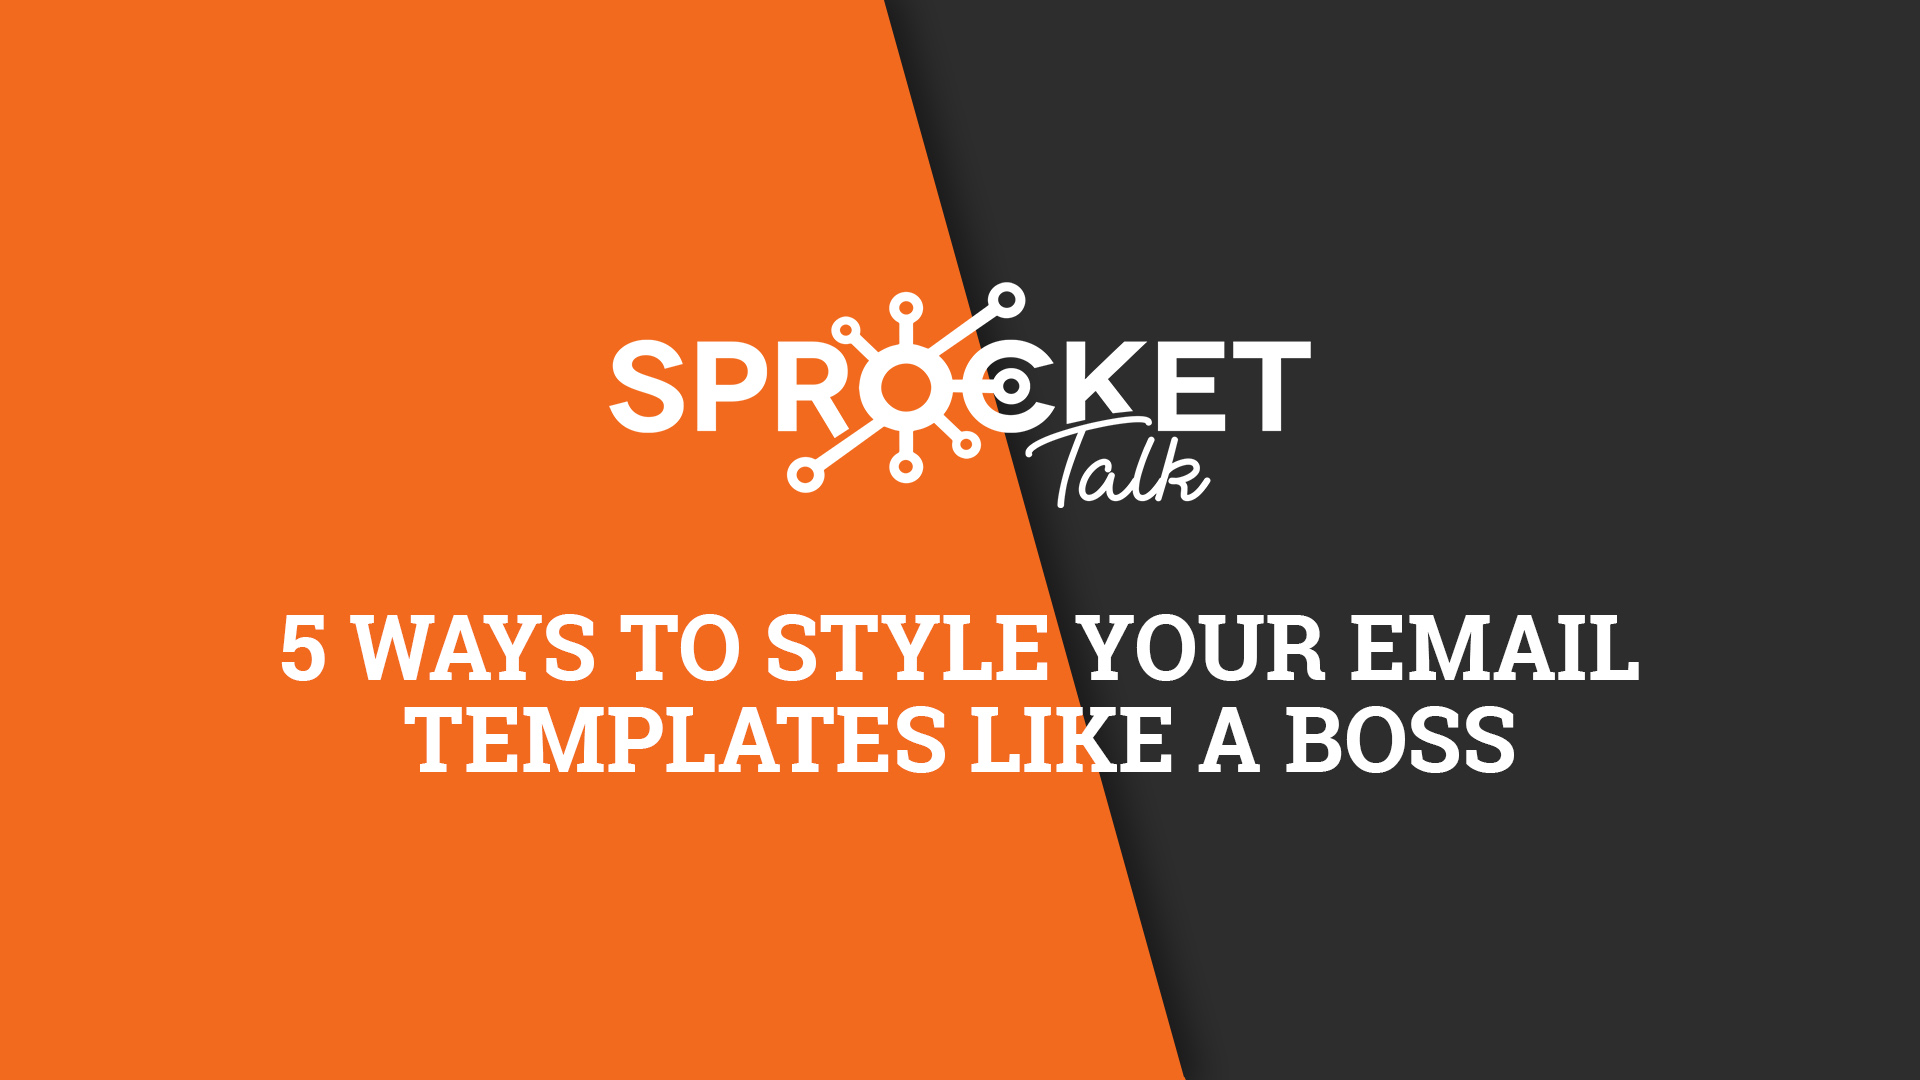 5 Ways To Style Your Email Templates Like A Boss